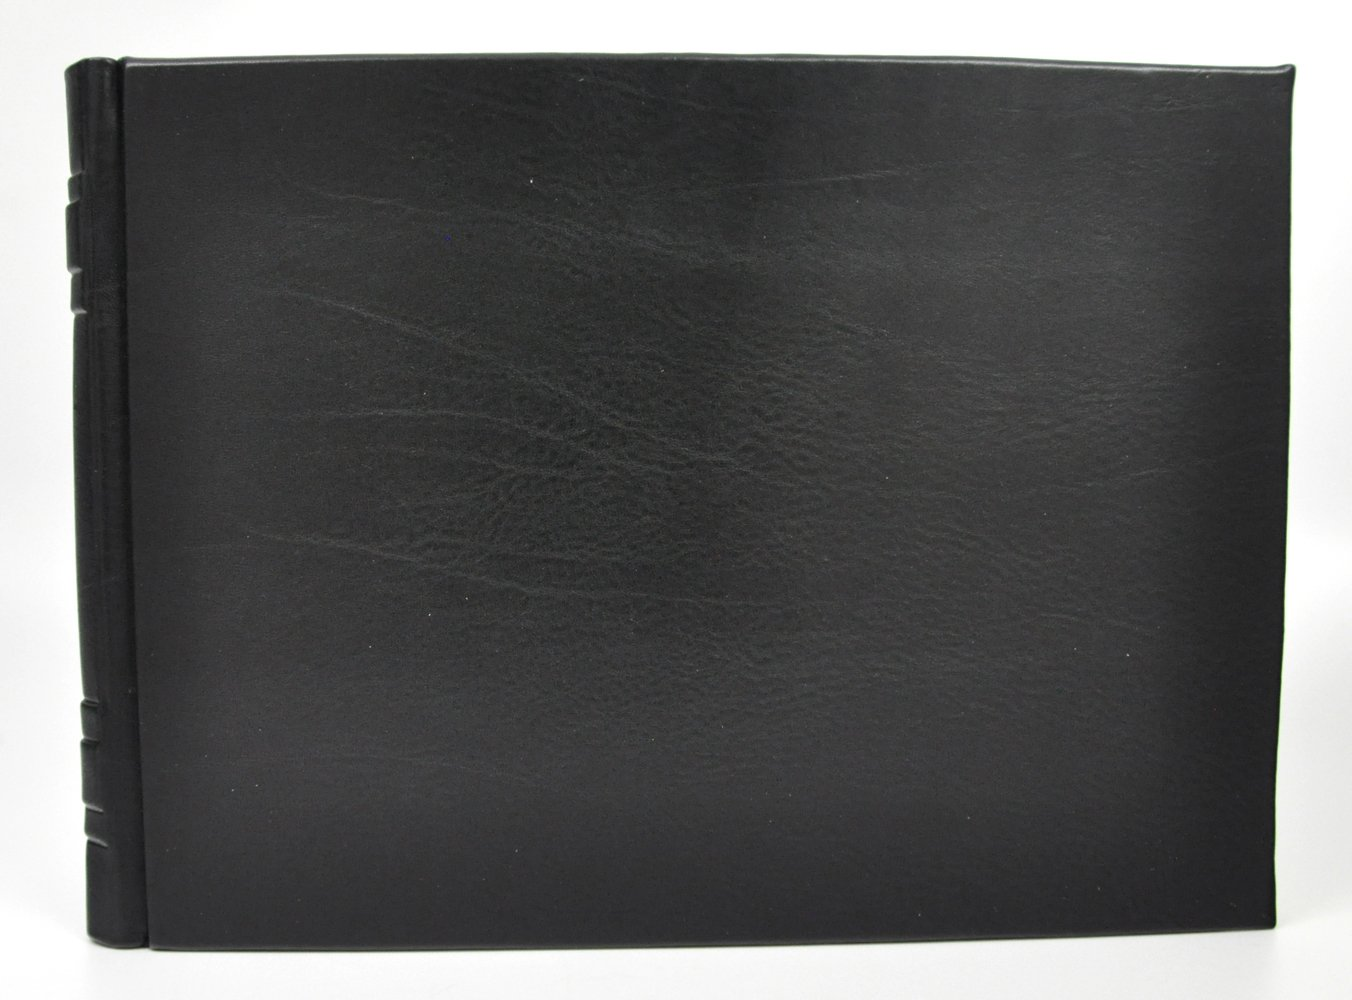 Italian Leather Guest Book from Fiorentina - Lined Pages - Black Calfskin